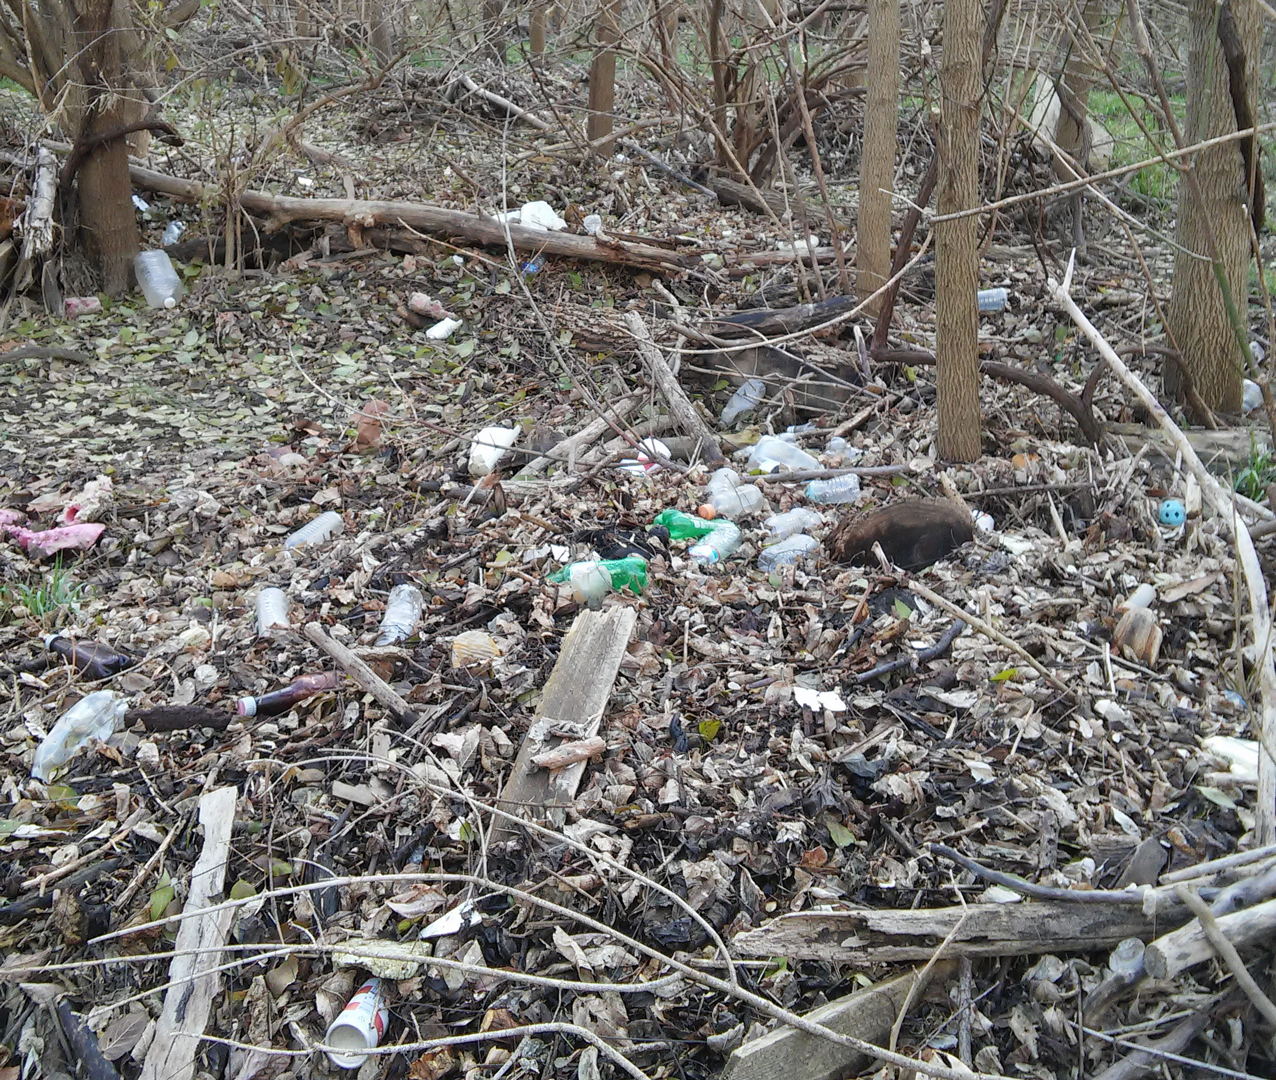 Plastic and aluminum trash deposited alongside Greenway Trails after flooding